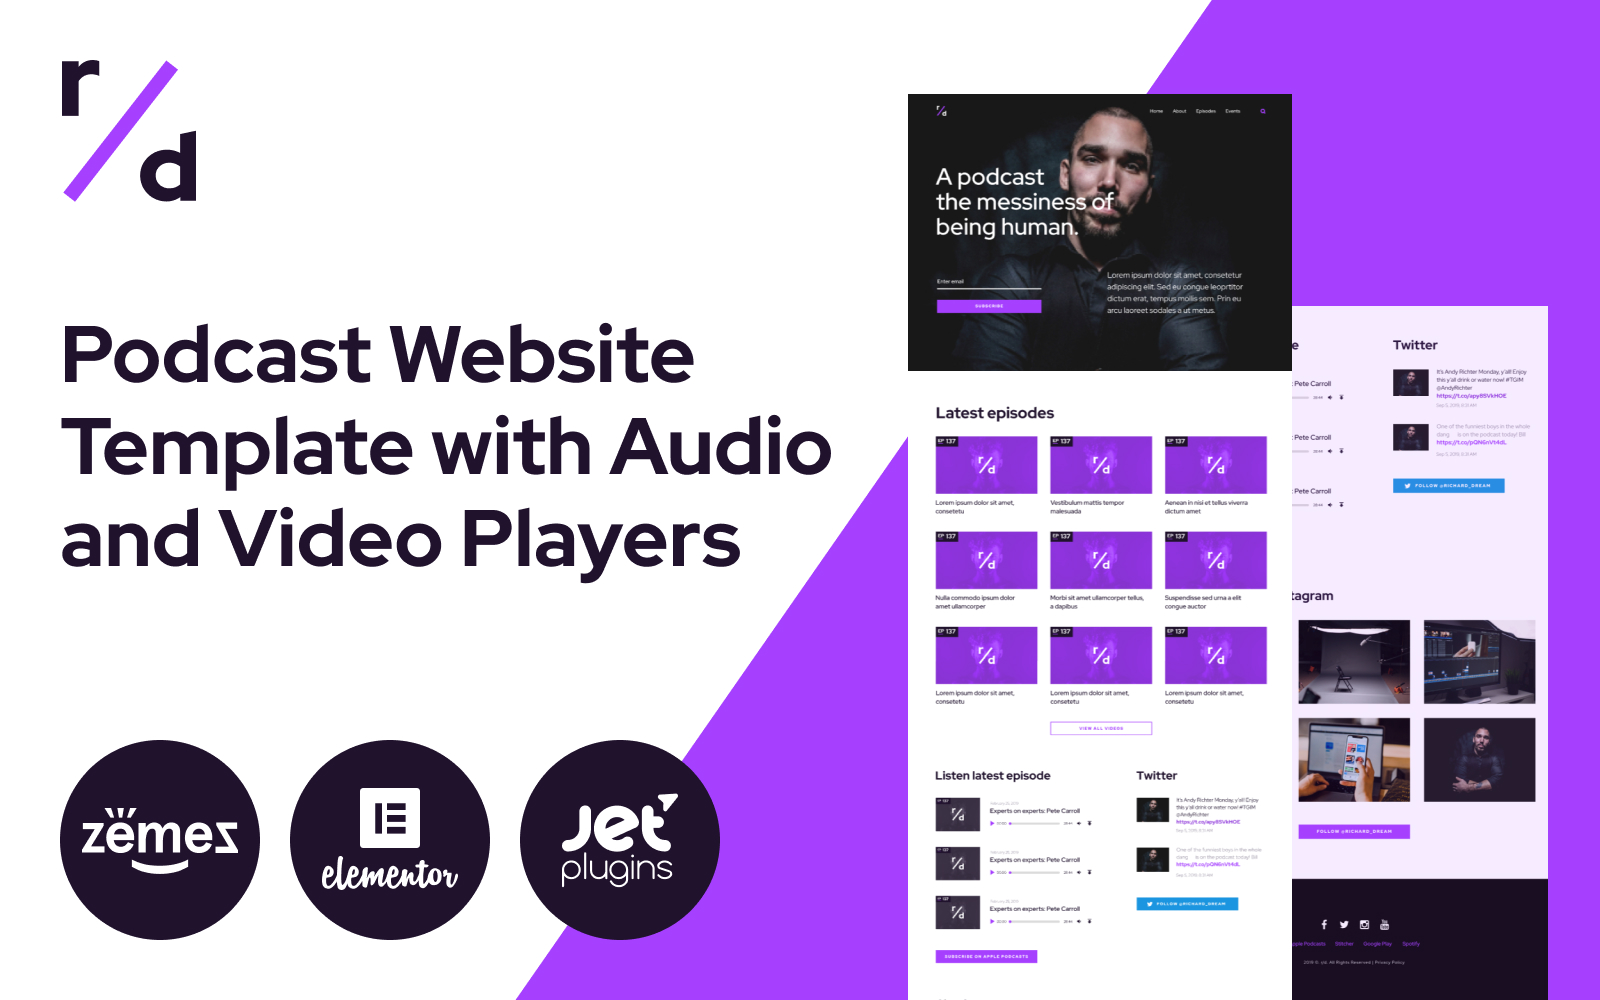 Reszponzív Richard Dream - Podcast Website Template with Audio and Video Players WordPress sablon 86500